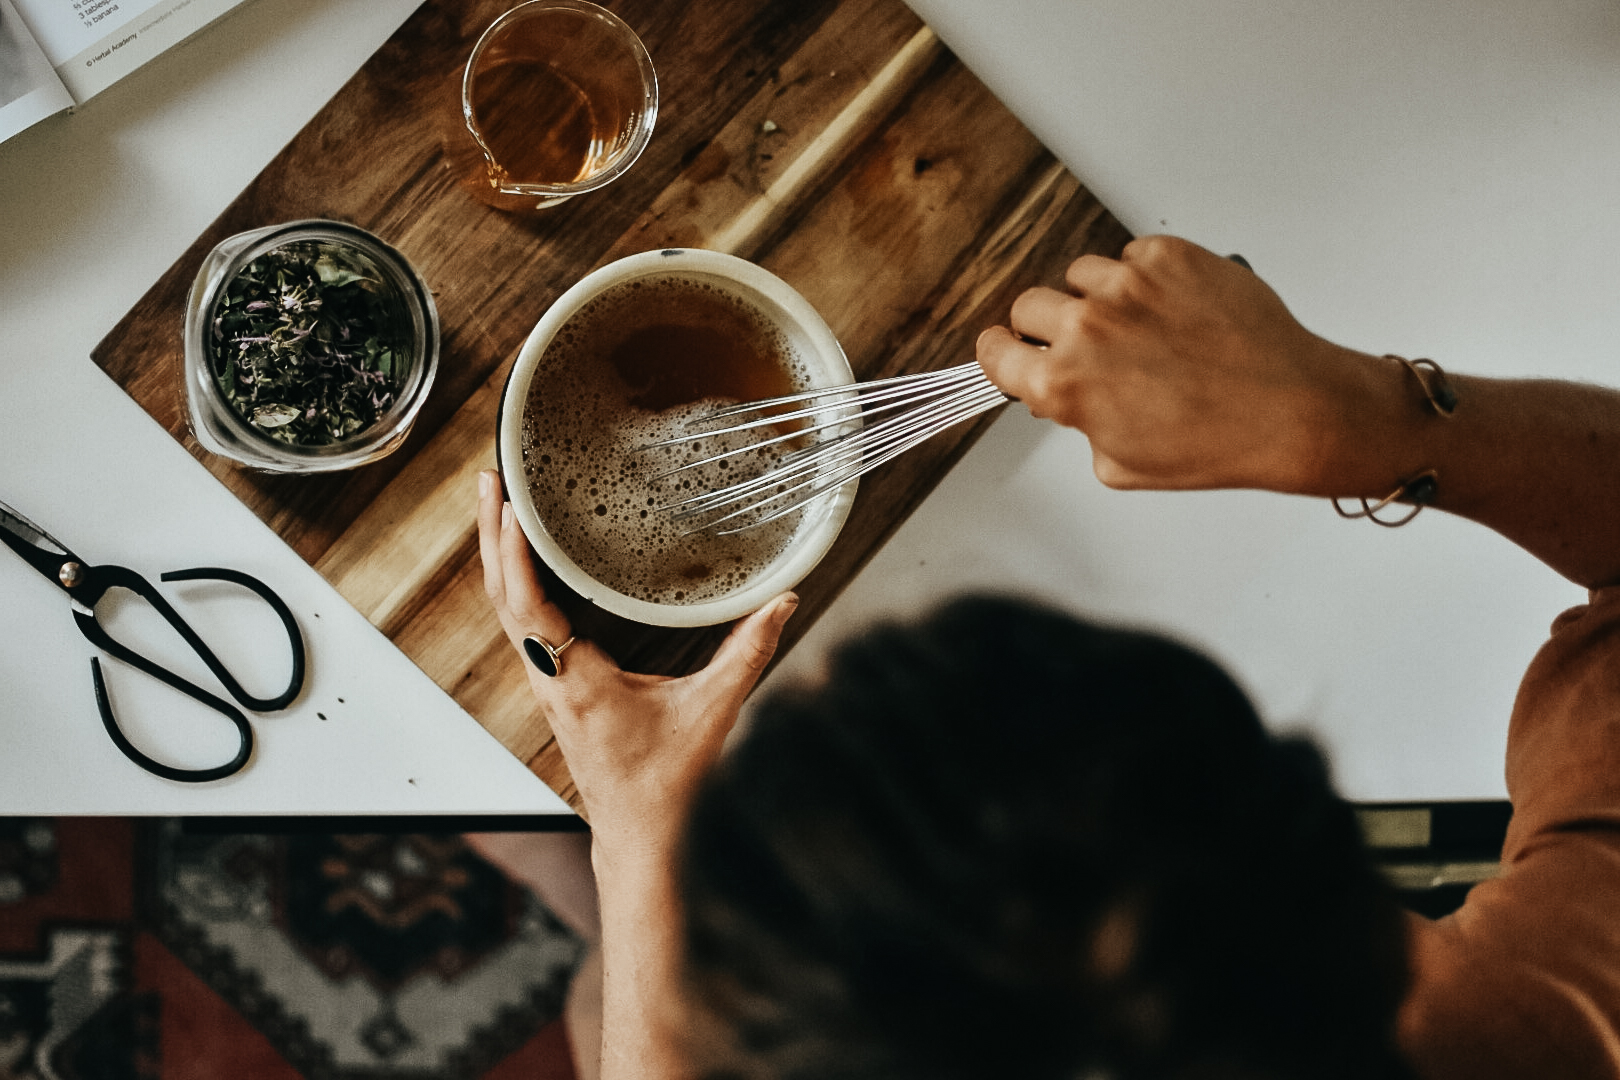 Making Herbal Syrup - Family Herbalist Course by Herbal Academy